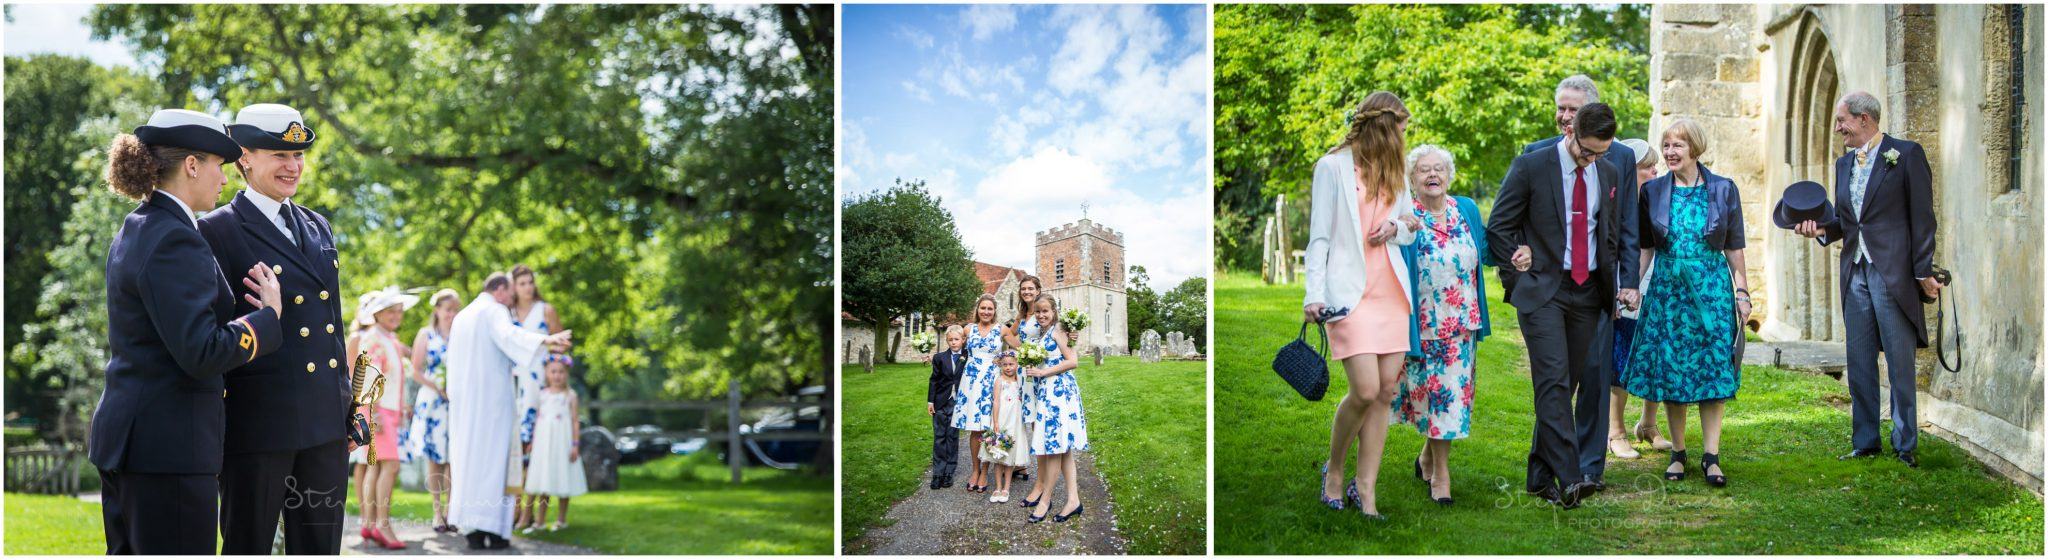 Lymington wedding photography friends and family arriving at church